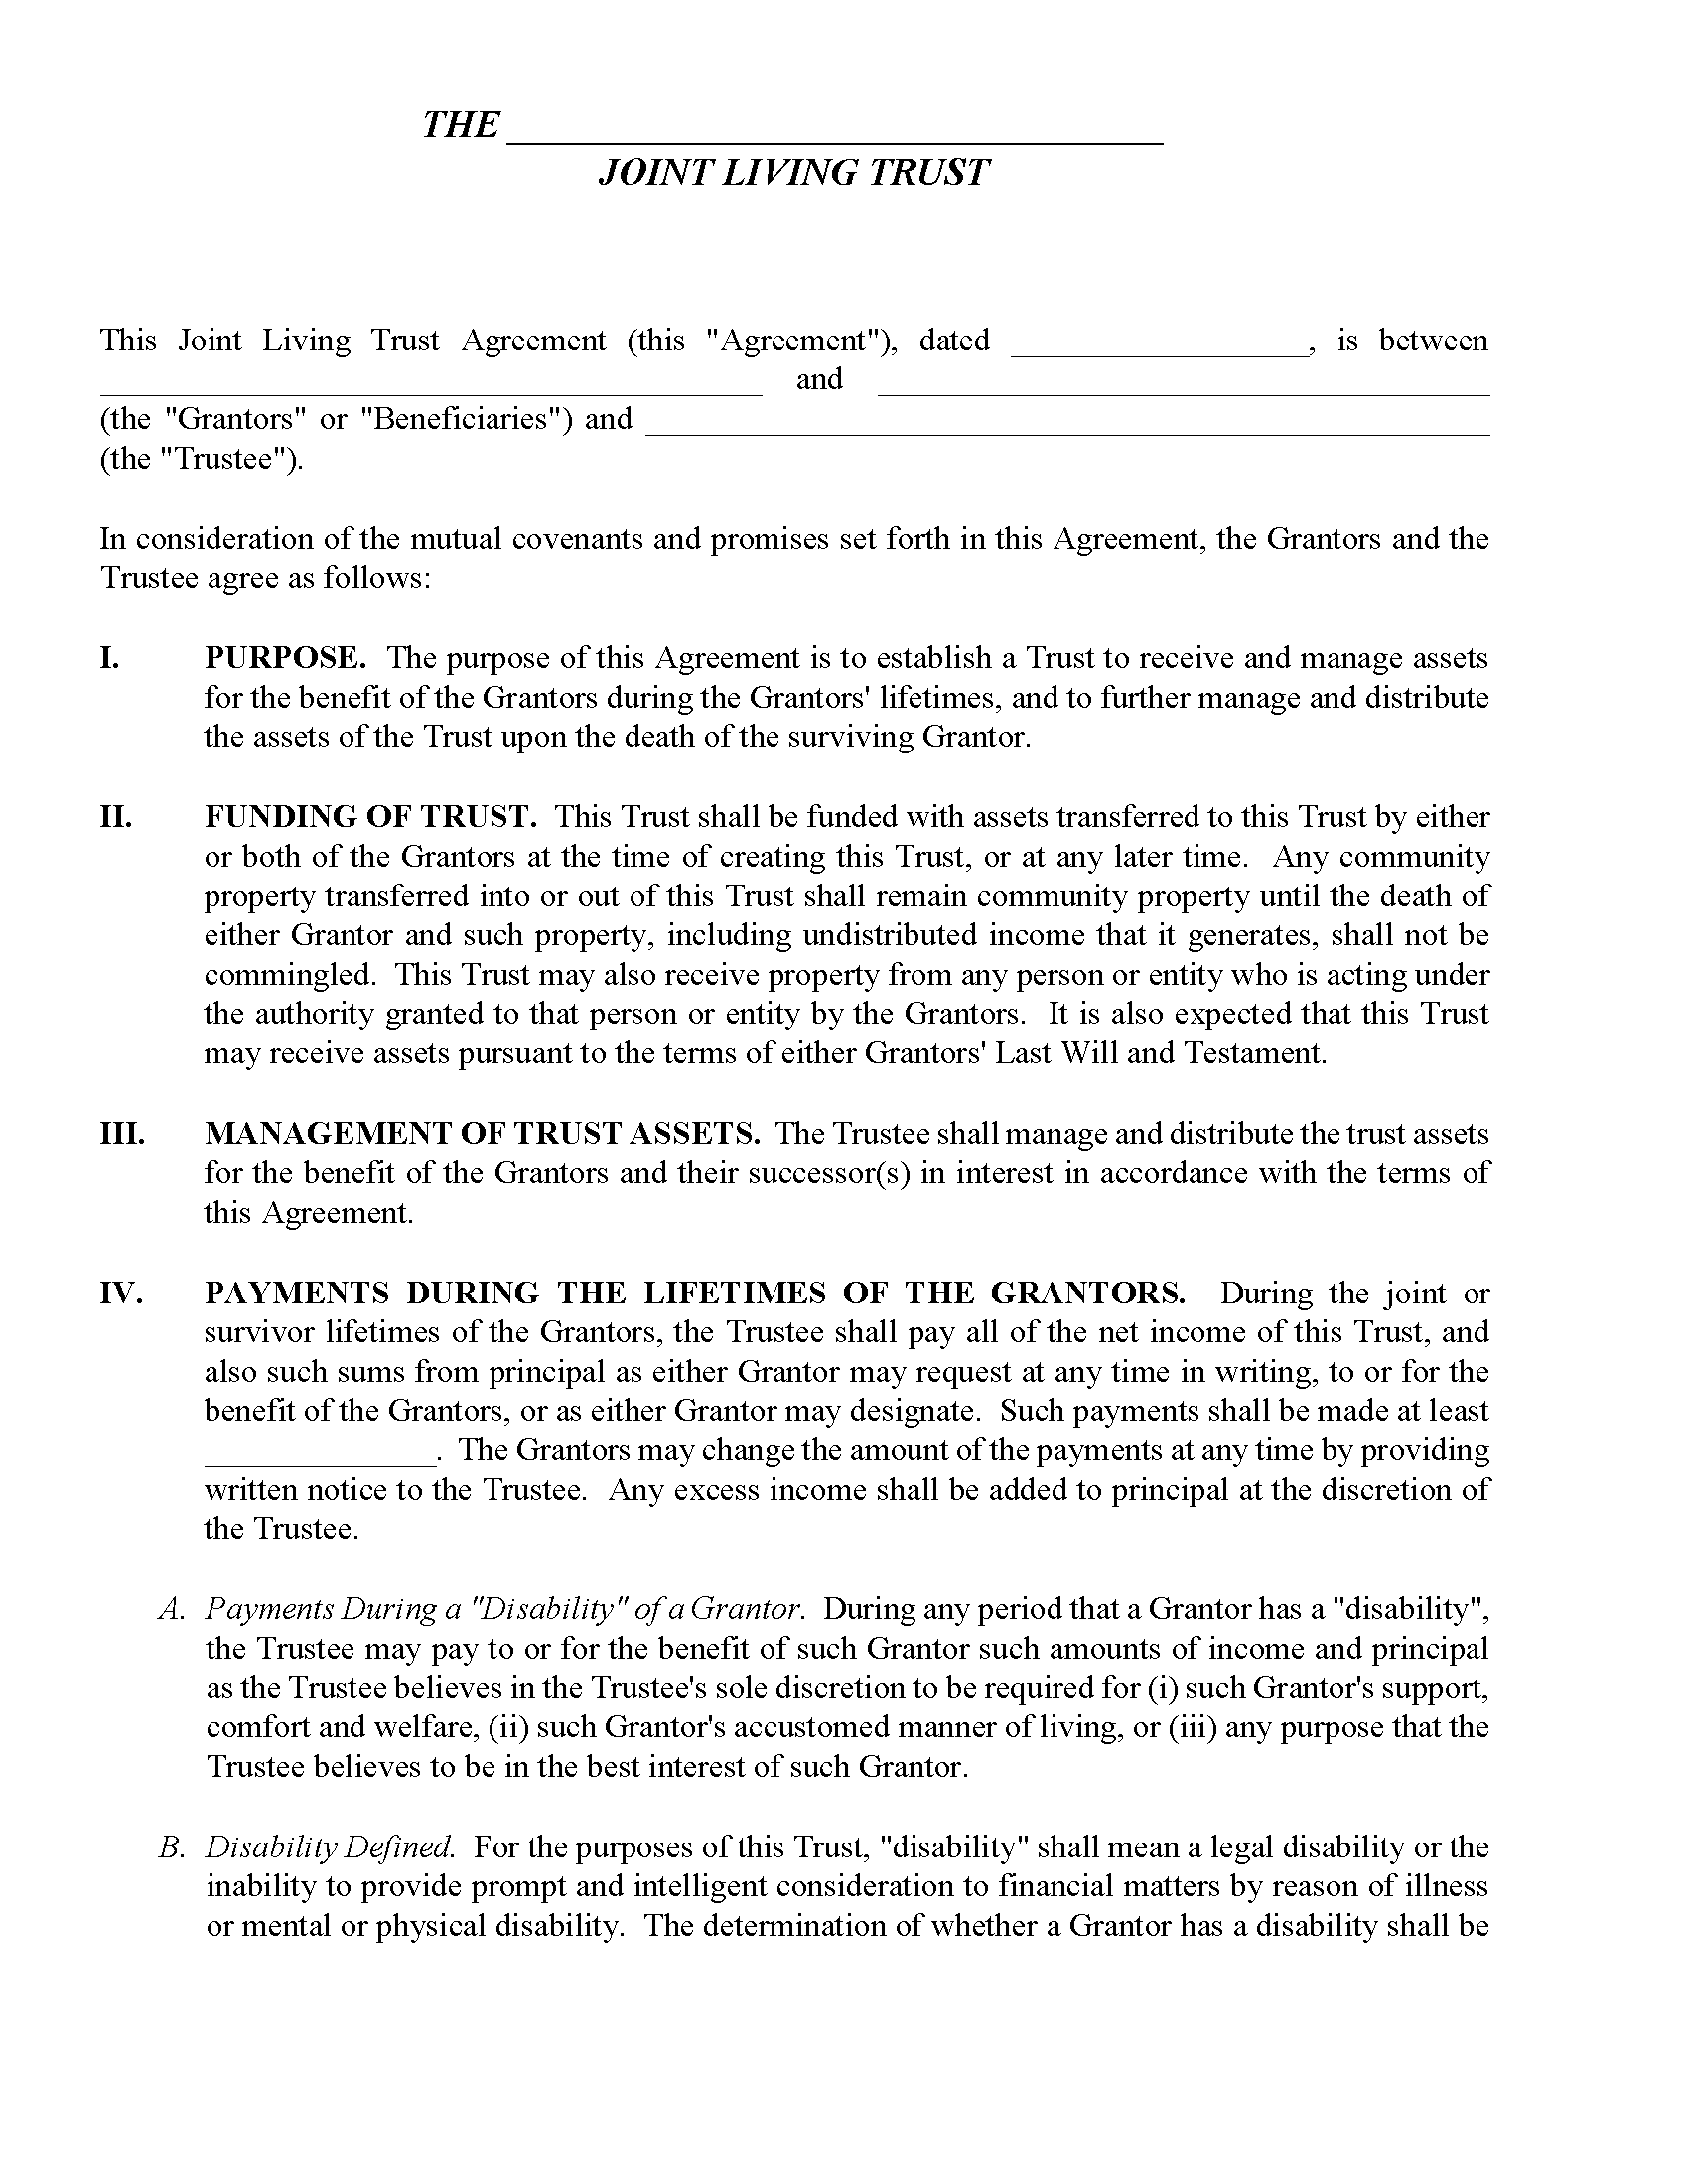 Indiana Joint Living Trust Form